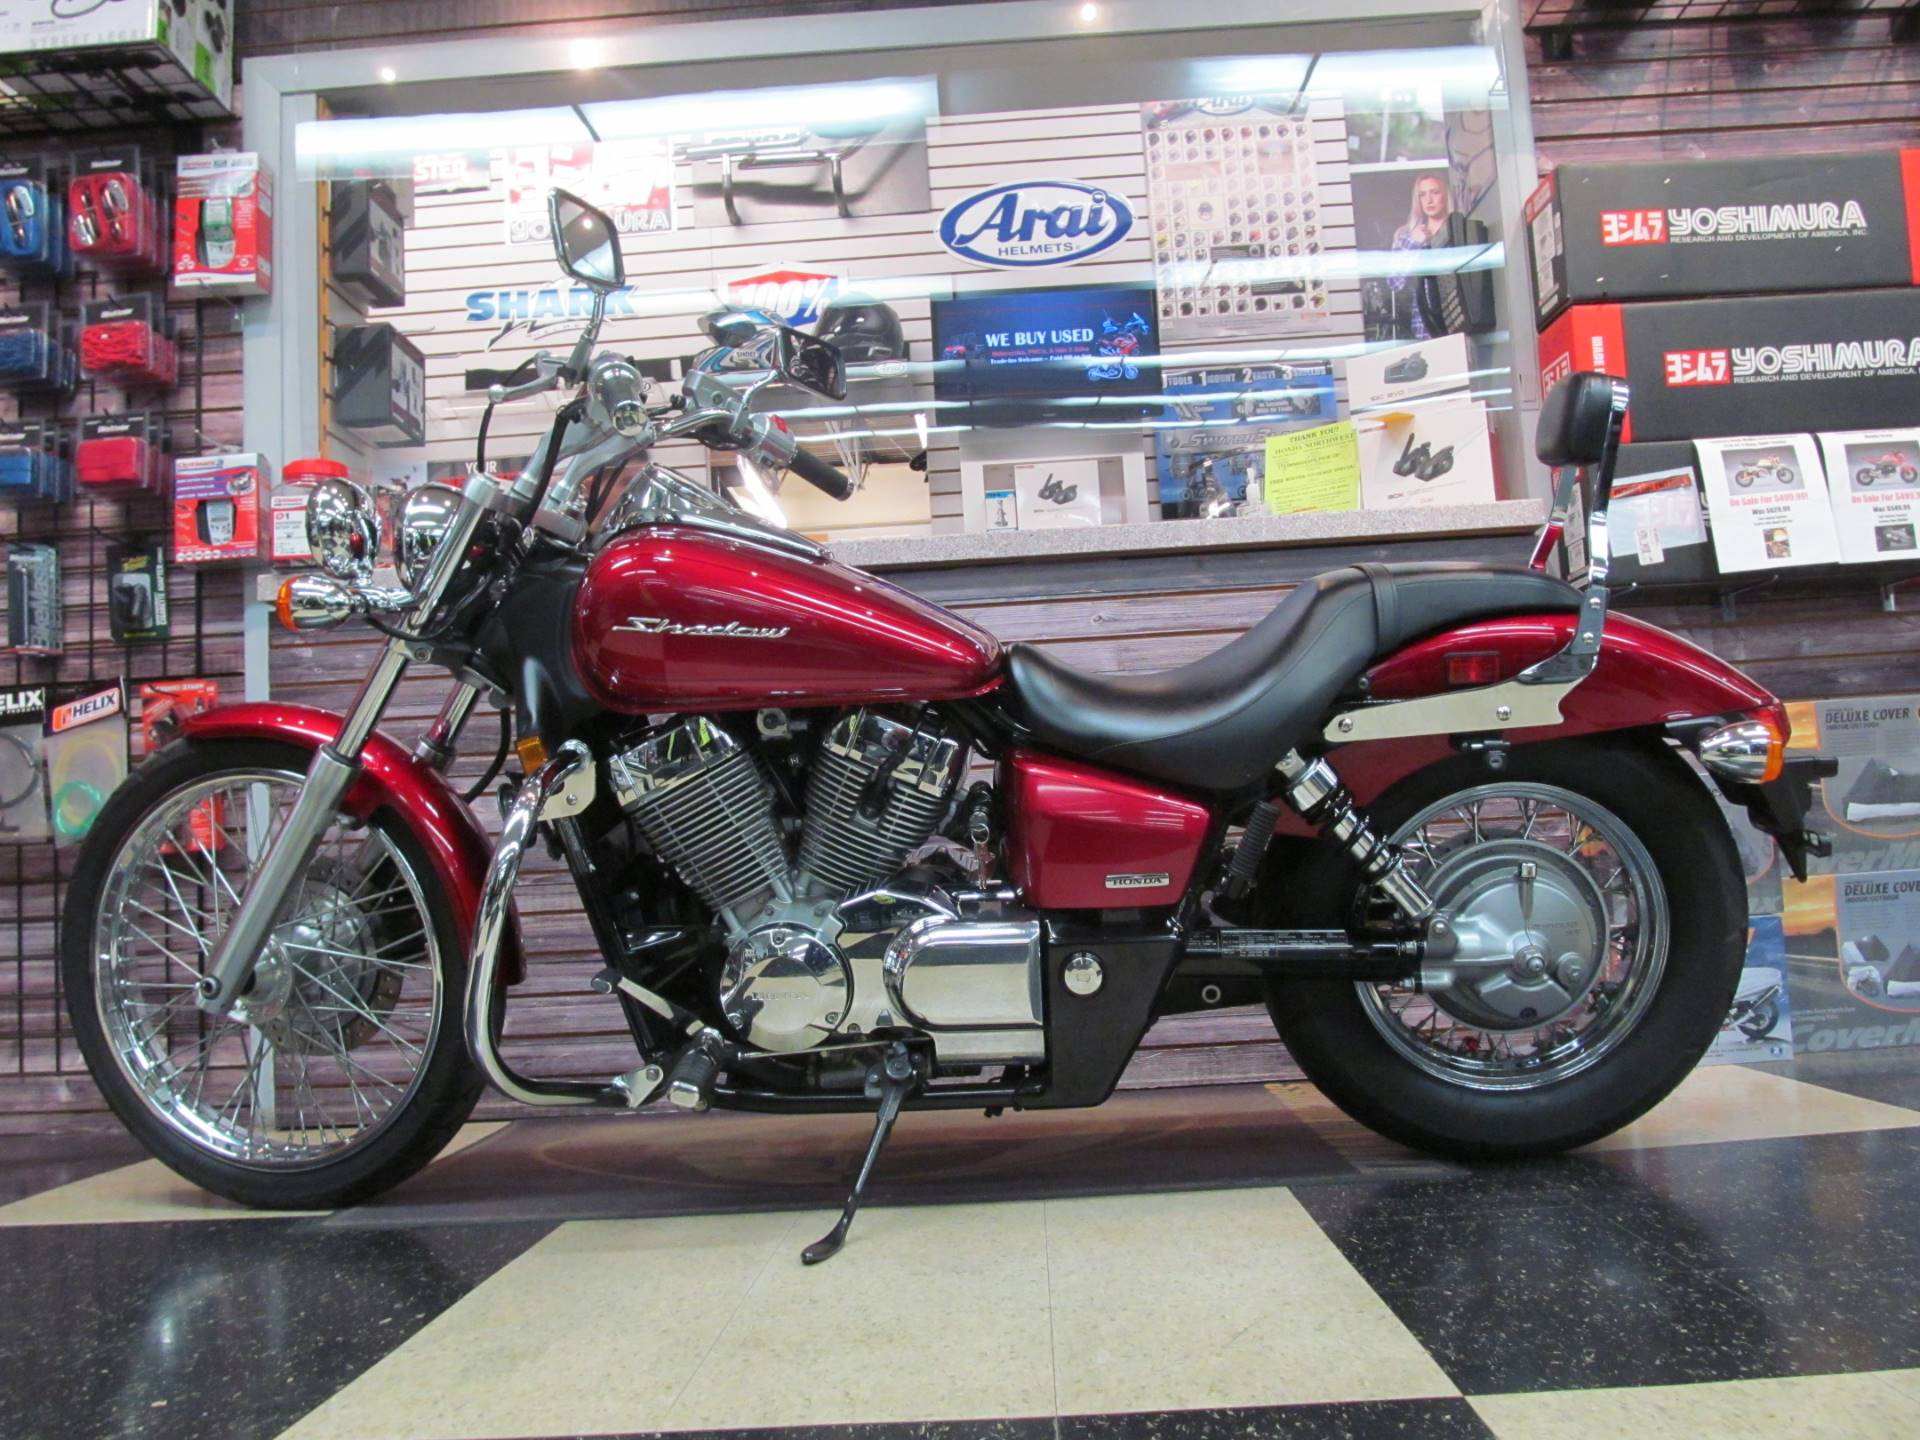 2009 Honda Shadow Spirit 750 in Crystal Lake, Illinois - Photo 2